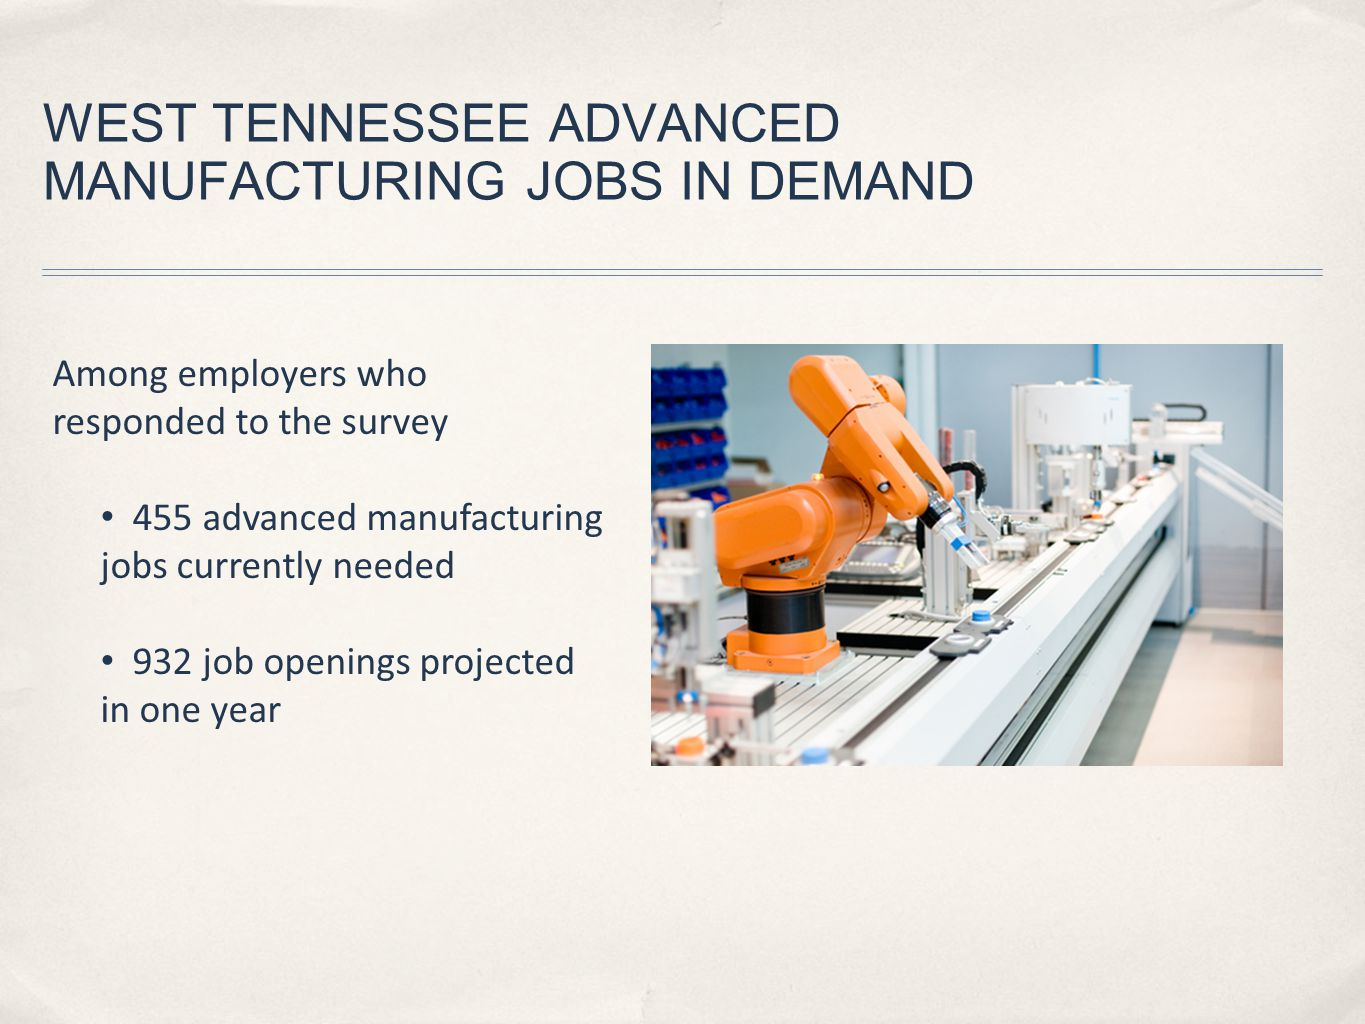 WEST TENNESSEE ADVANCED MANUFACTURING JOBS IN DEMAND Among employers who responded to the survey 455 advanced manufacturing jobs currently needed 932 job openings projected in one year